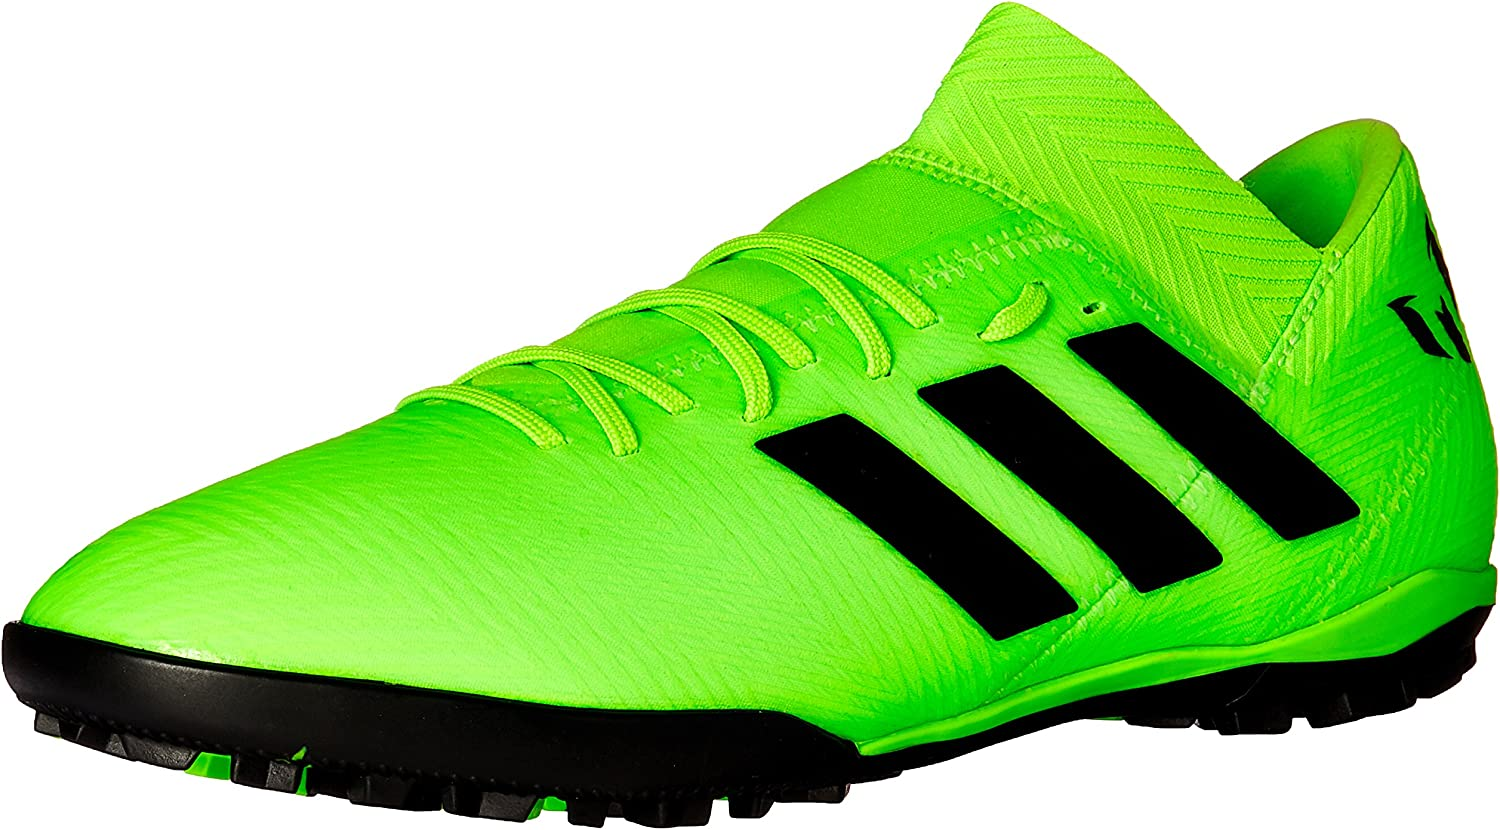 Adidas Mens Nemeziz Messi Tango 18.3 Turf Soccer shoes